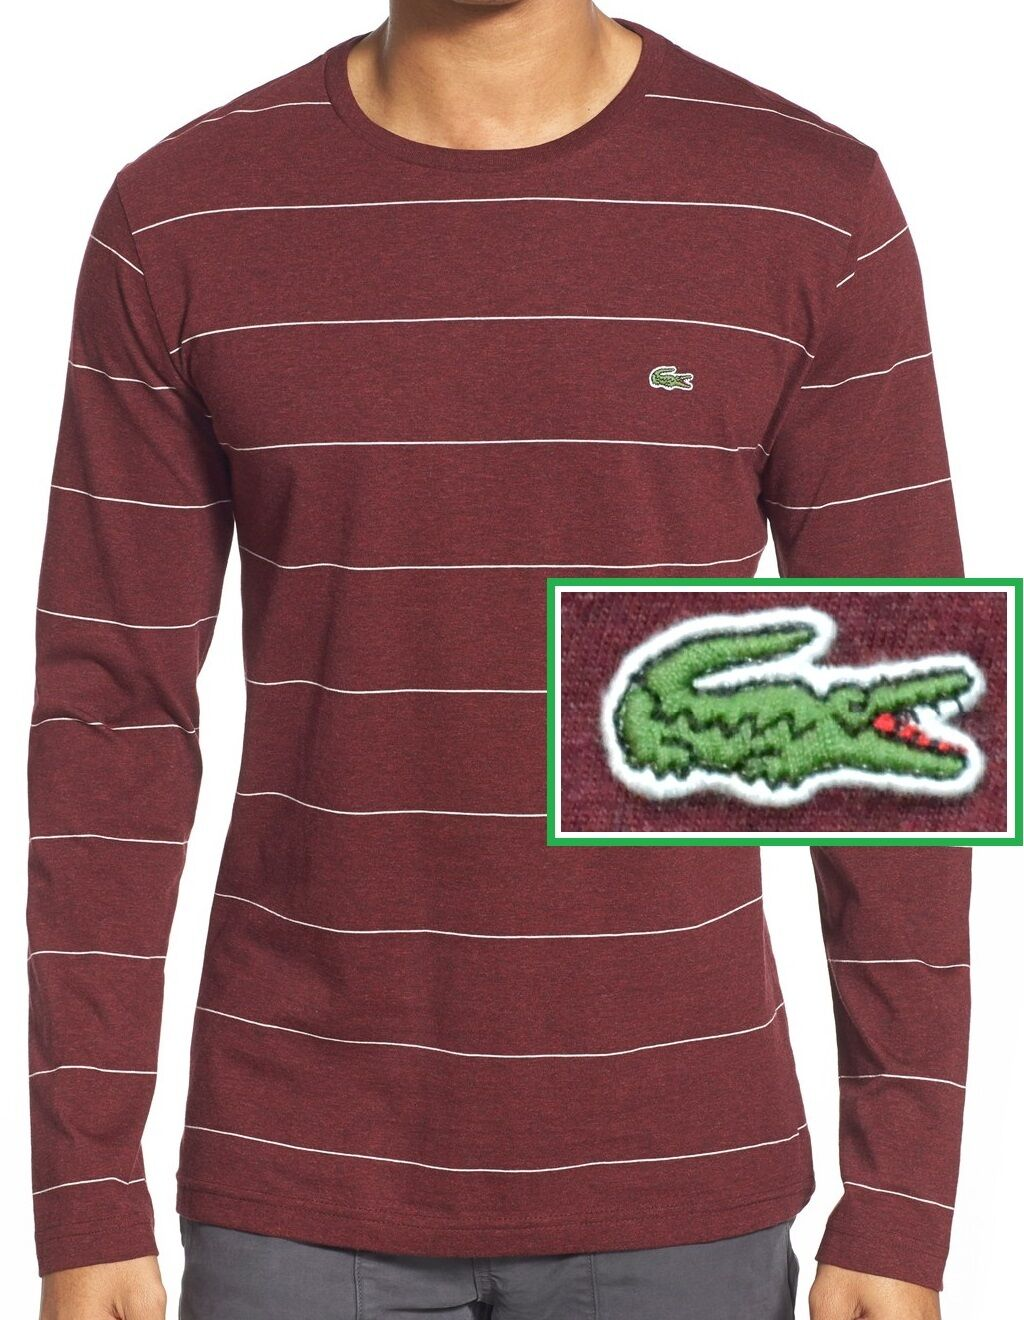 NWT Lacoste Contemporary Pima Cotton Slim Fit Long Sleeve Stripe Jersey T-Shirt